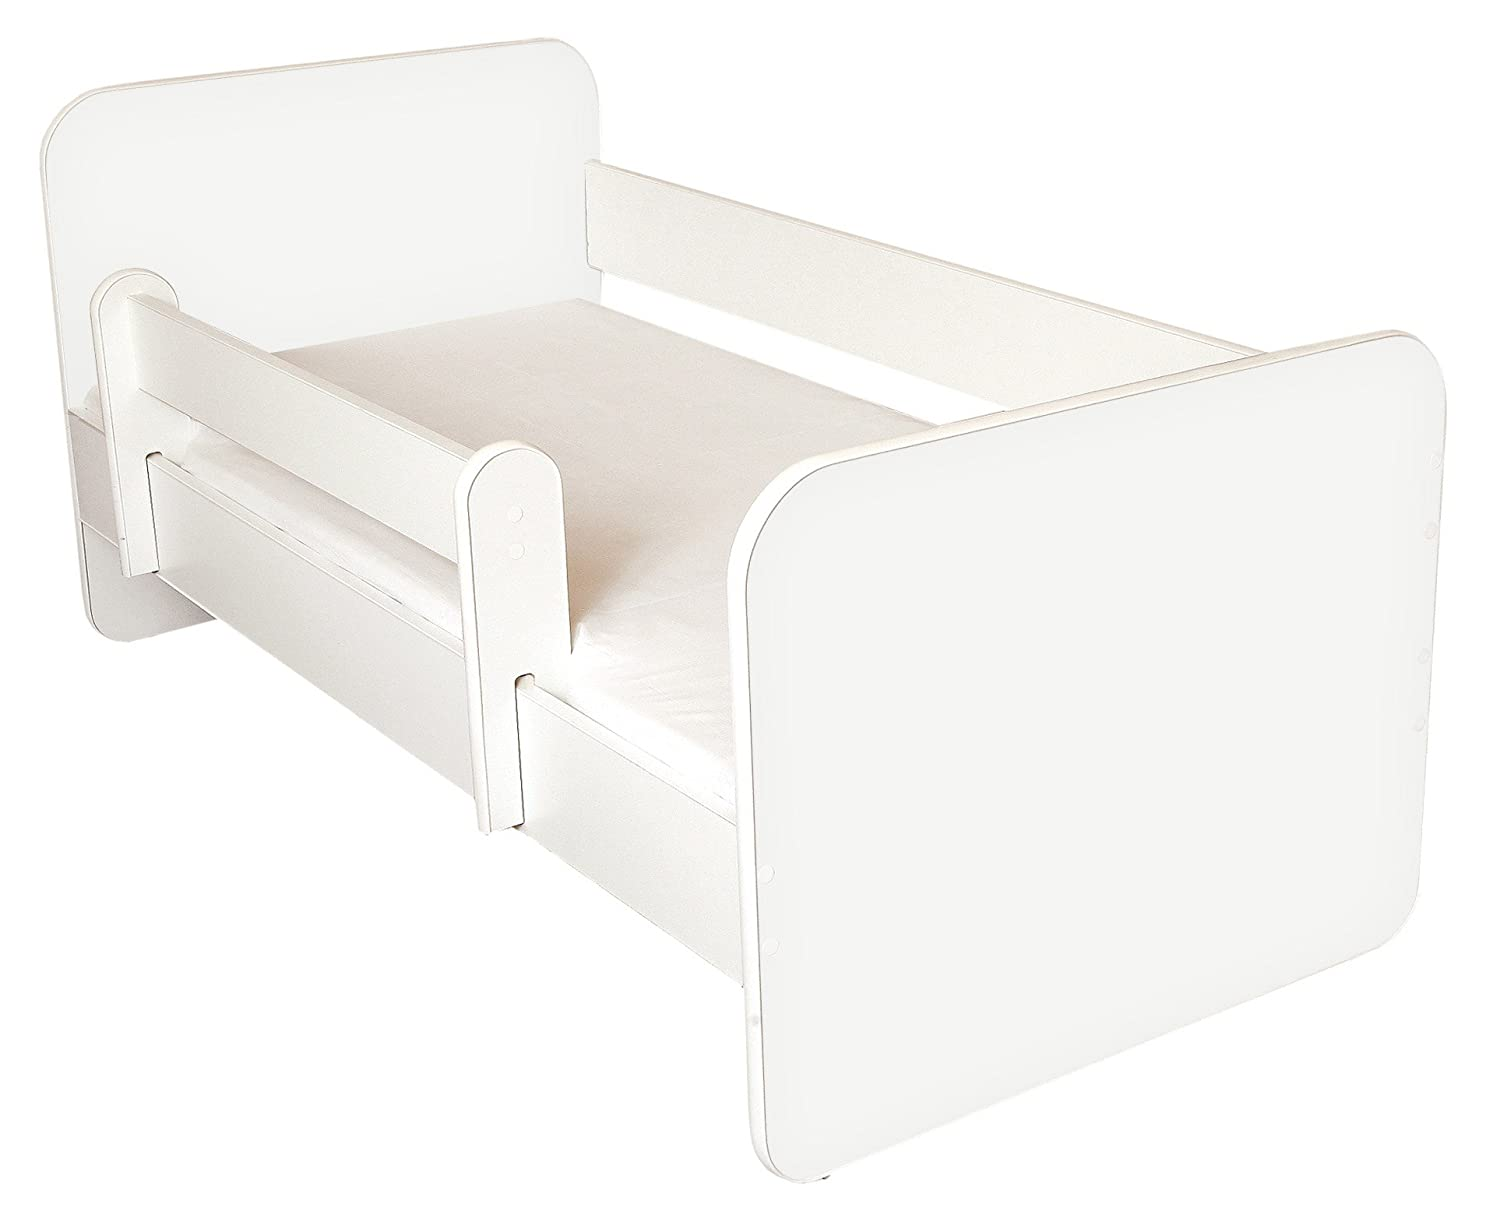 Toddler Bed with Mattress Removable Side Panels Amila Plain White